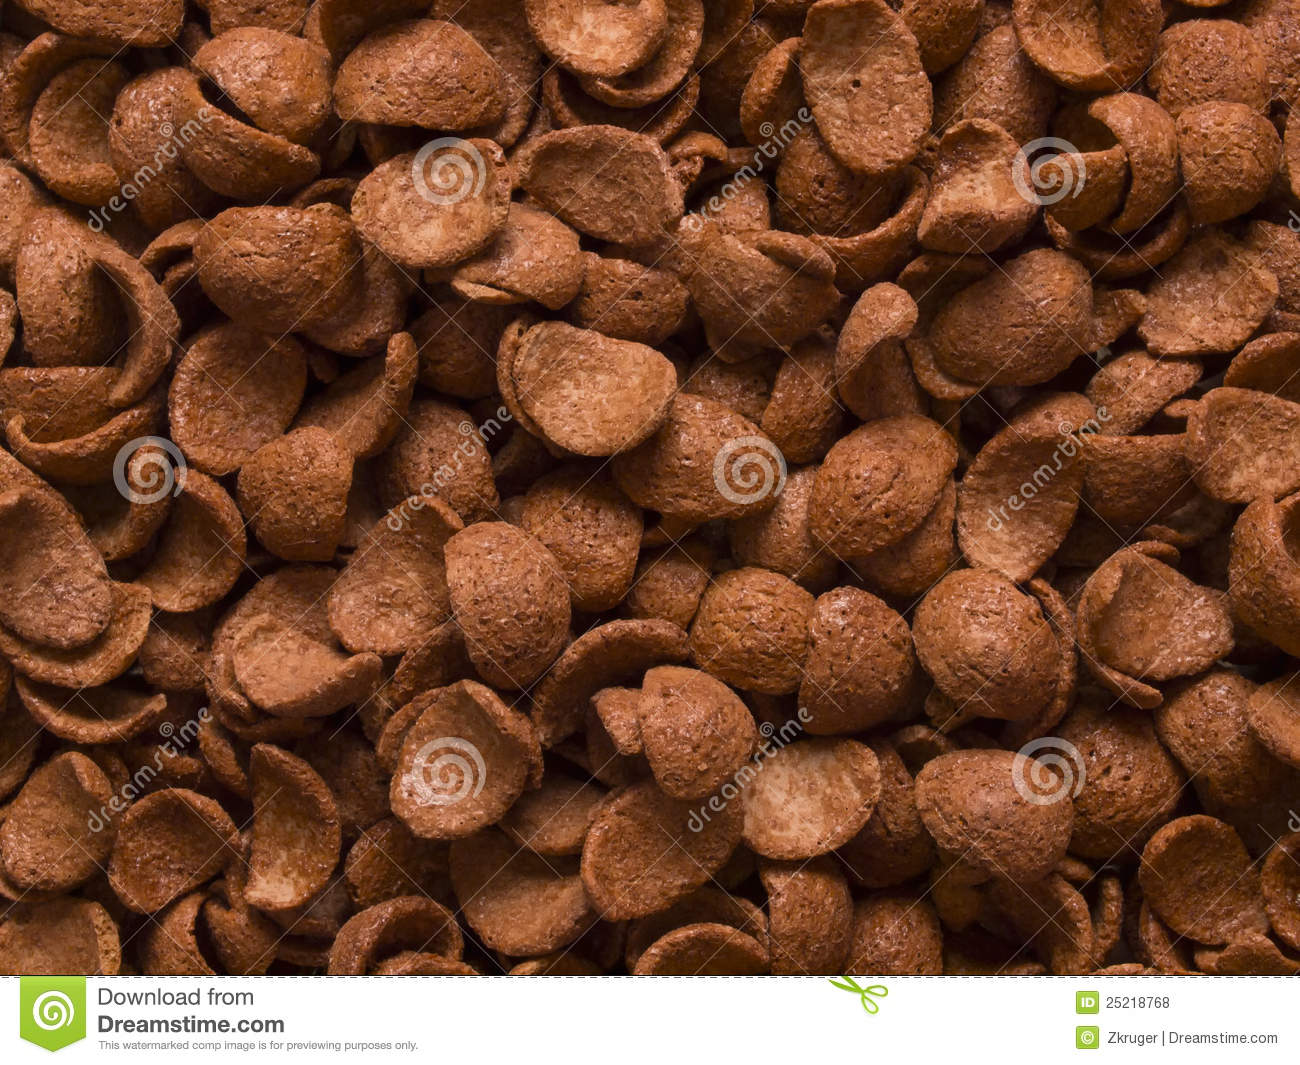 Chocolate Flavored Cereal Stock Photos - Image: 25218783